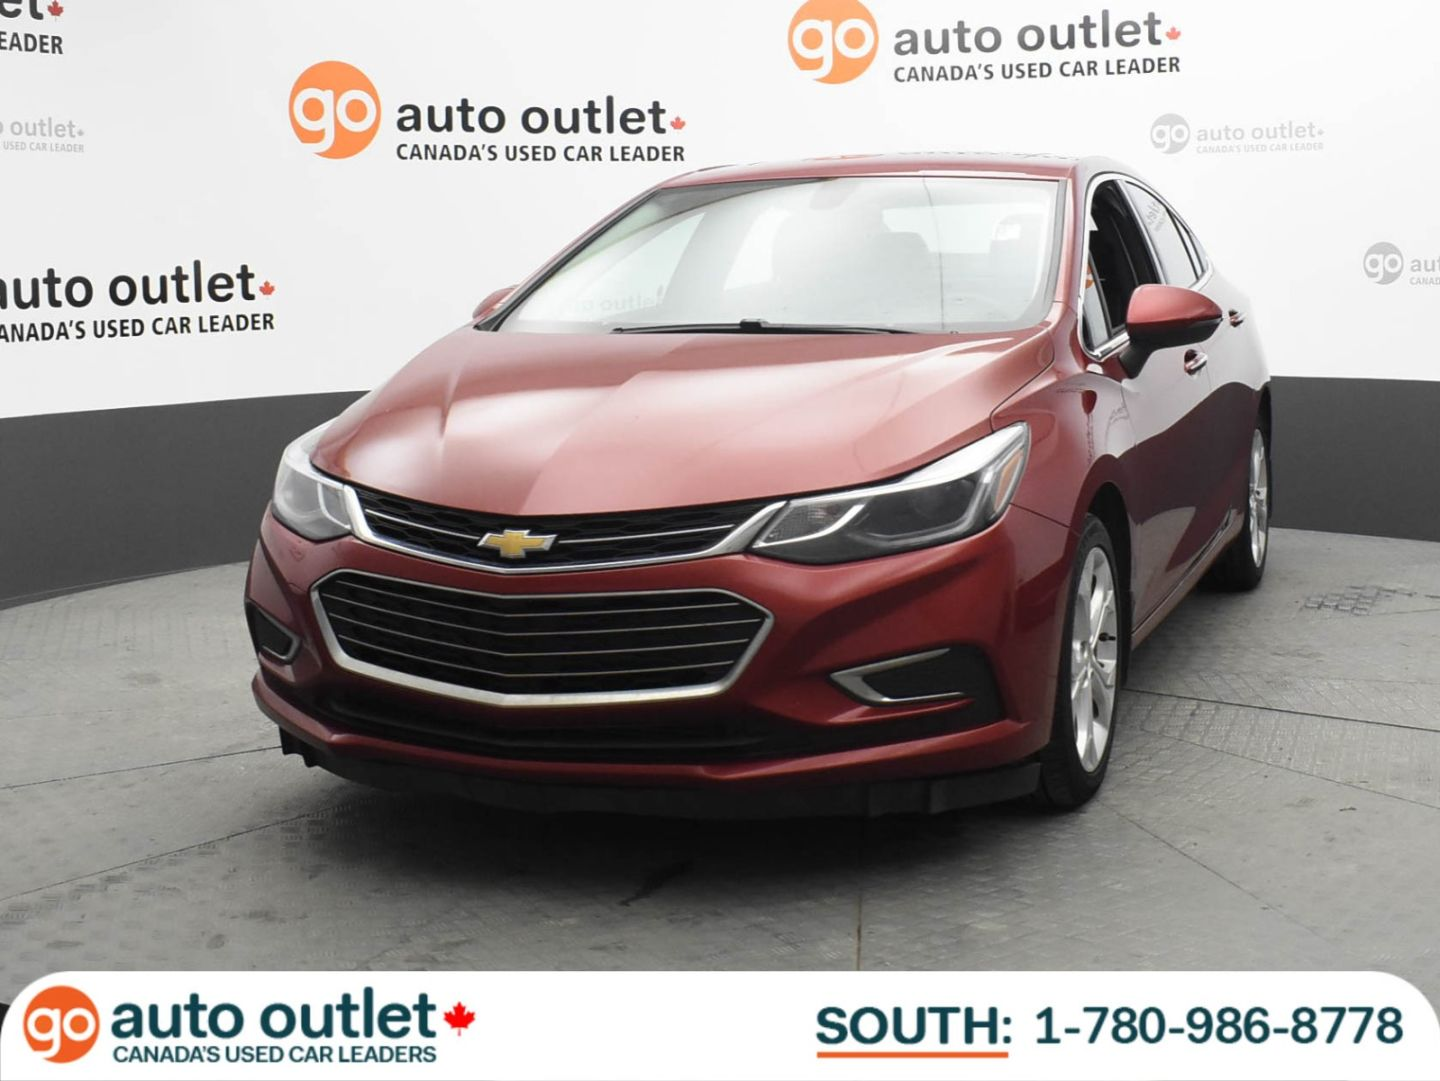 2017 Chevrolet Cruze Premier for sale in Leduc, Alberta